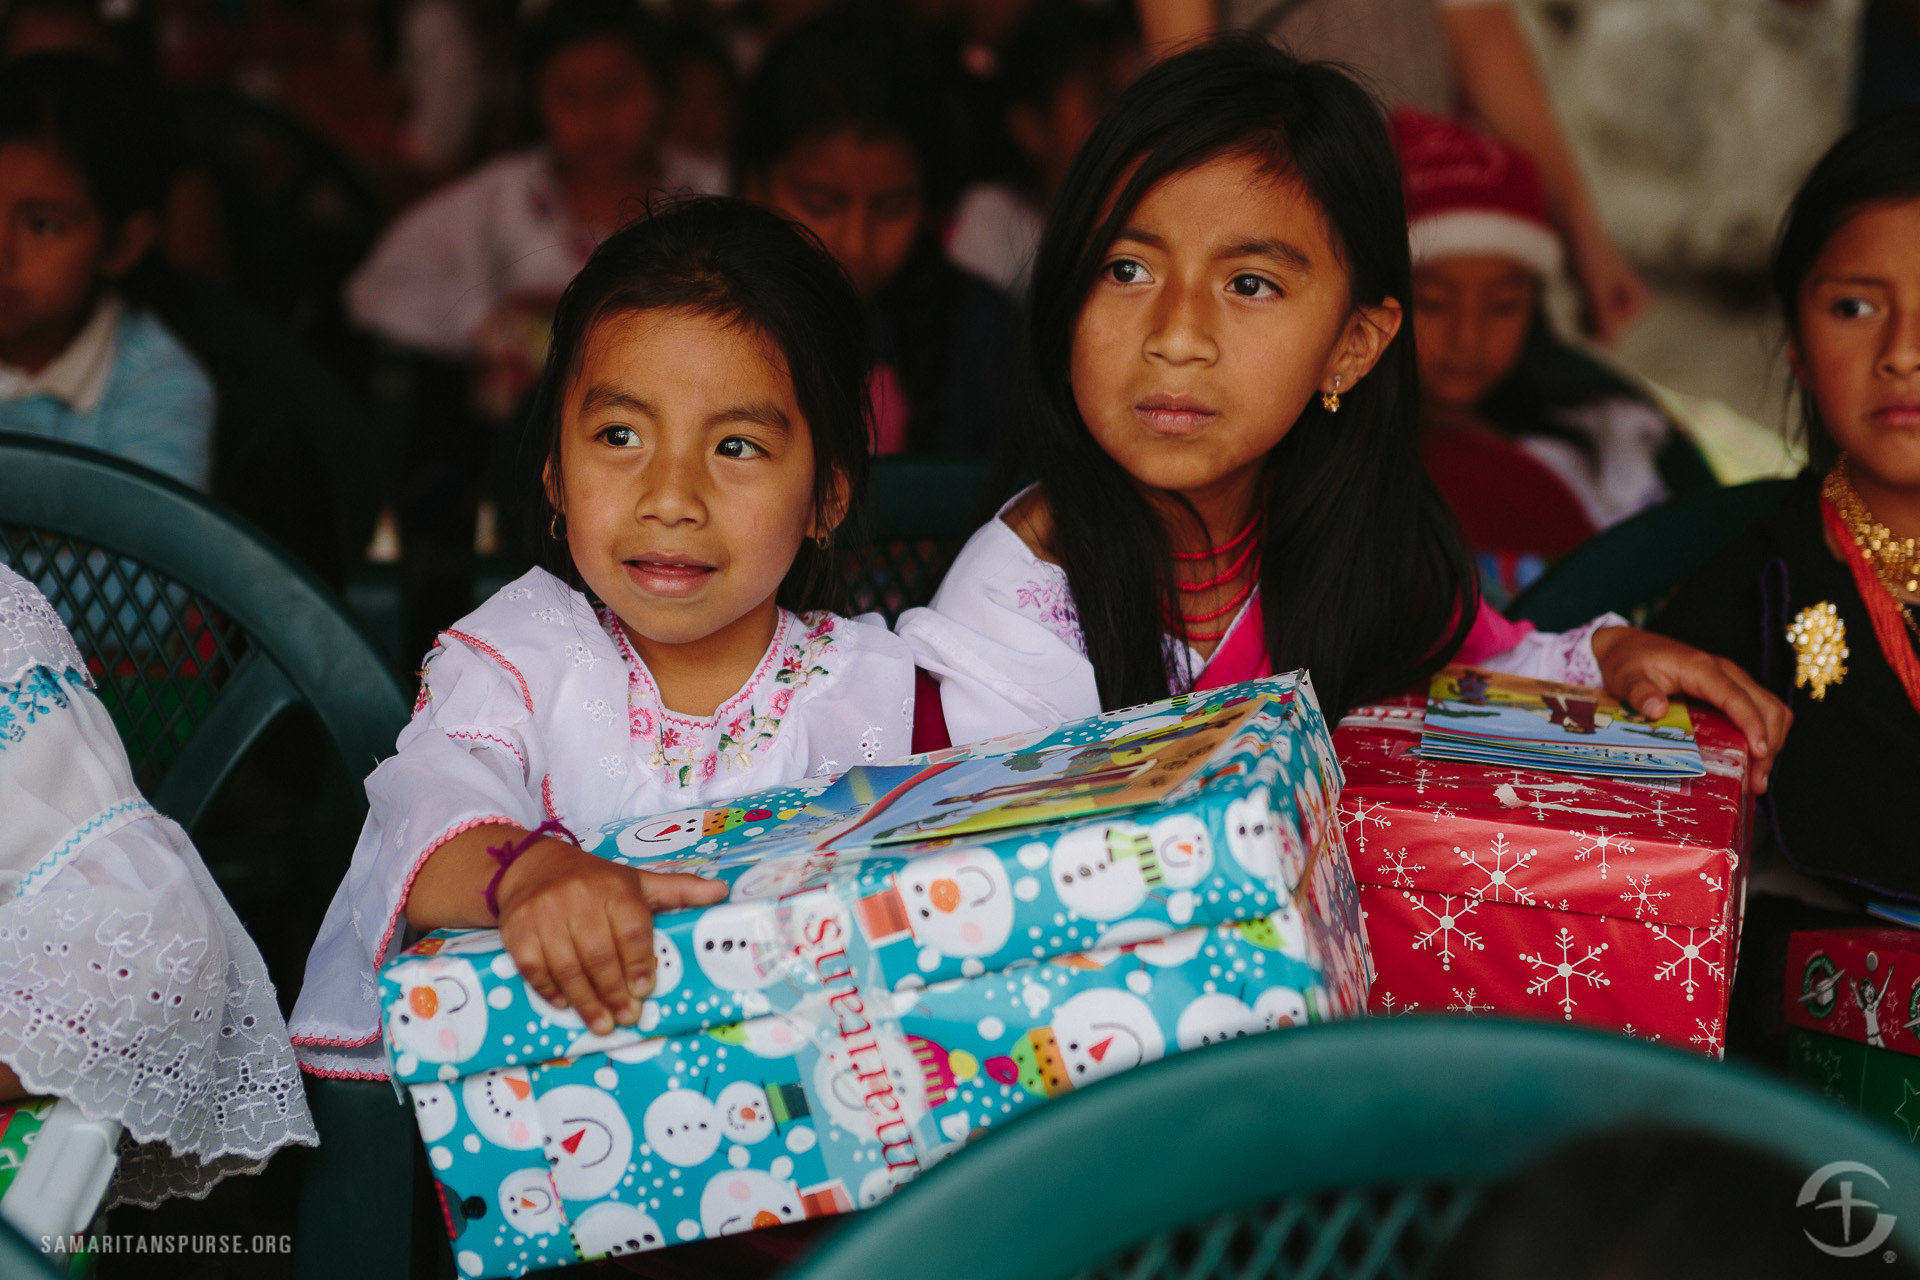 The shoe box gifts are often the only Christmas present the children receive.